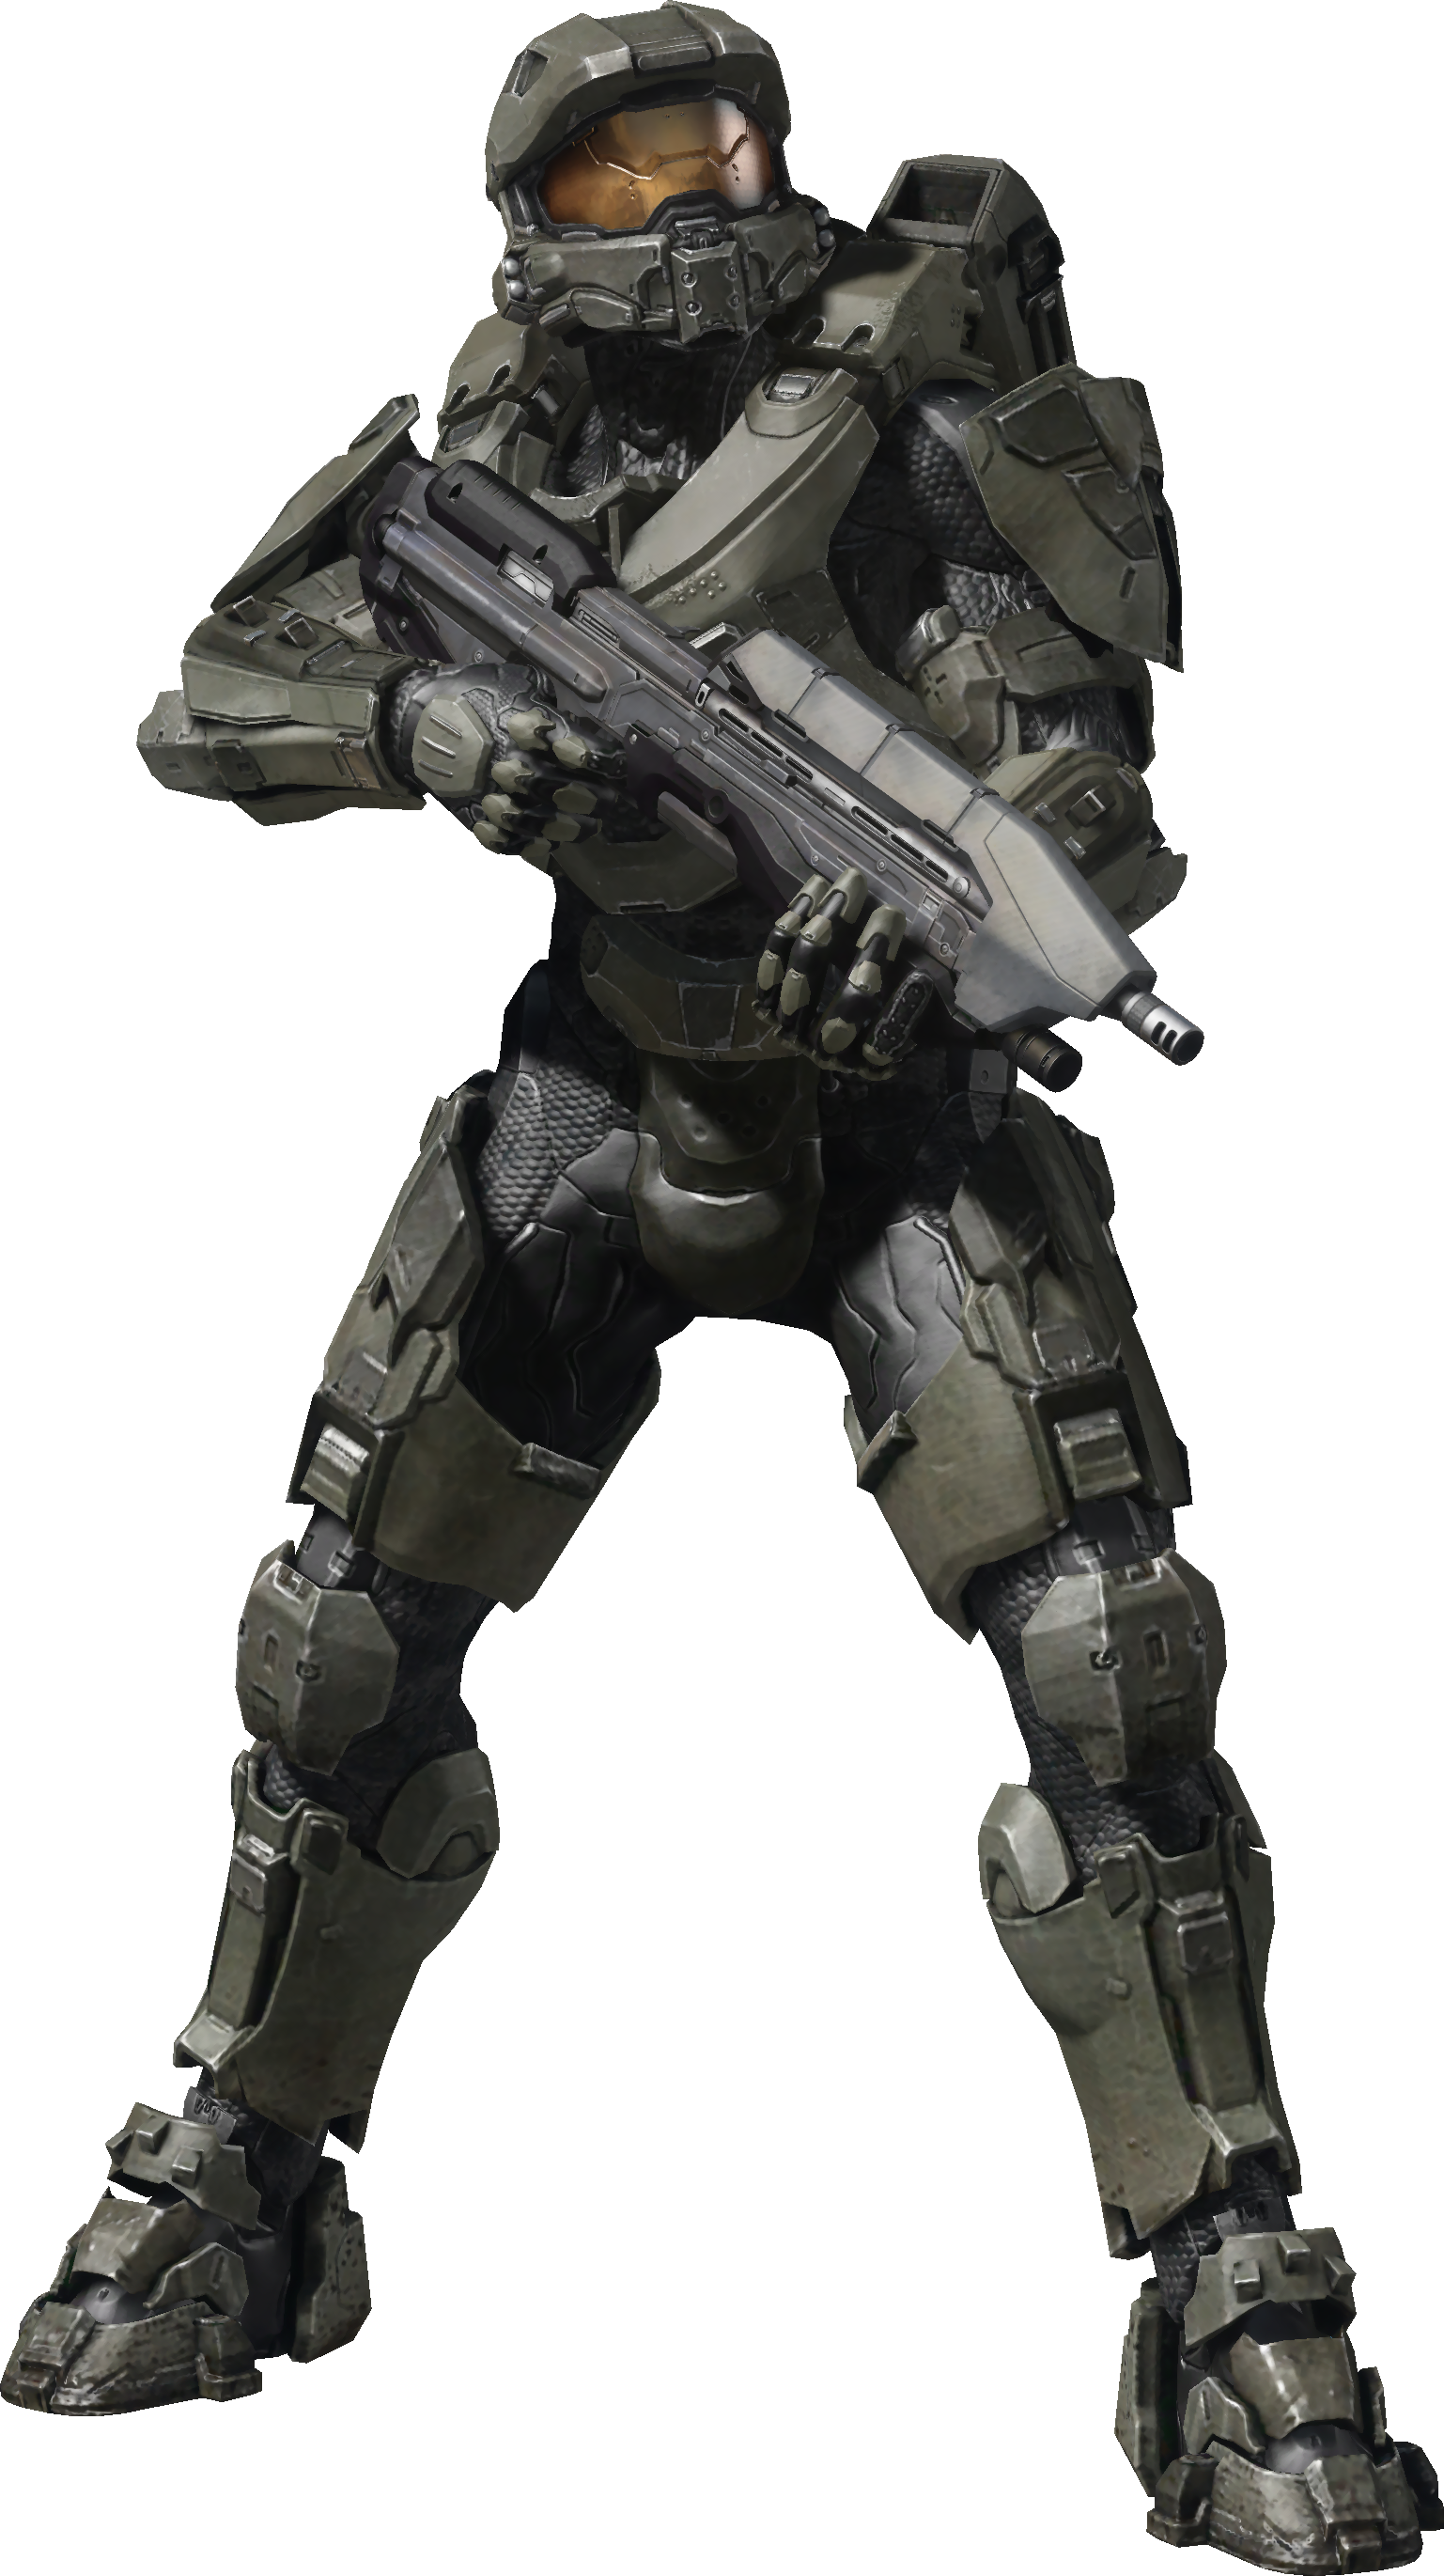 Halo 5 master chief png. Image wielding a ma